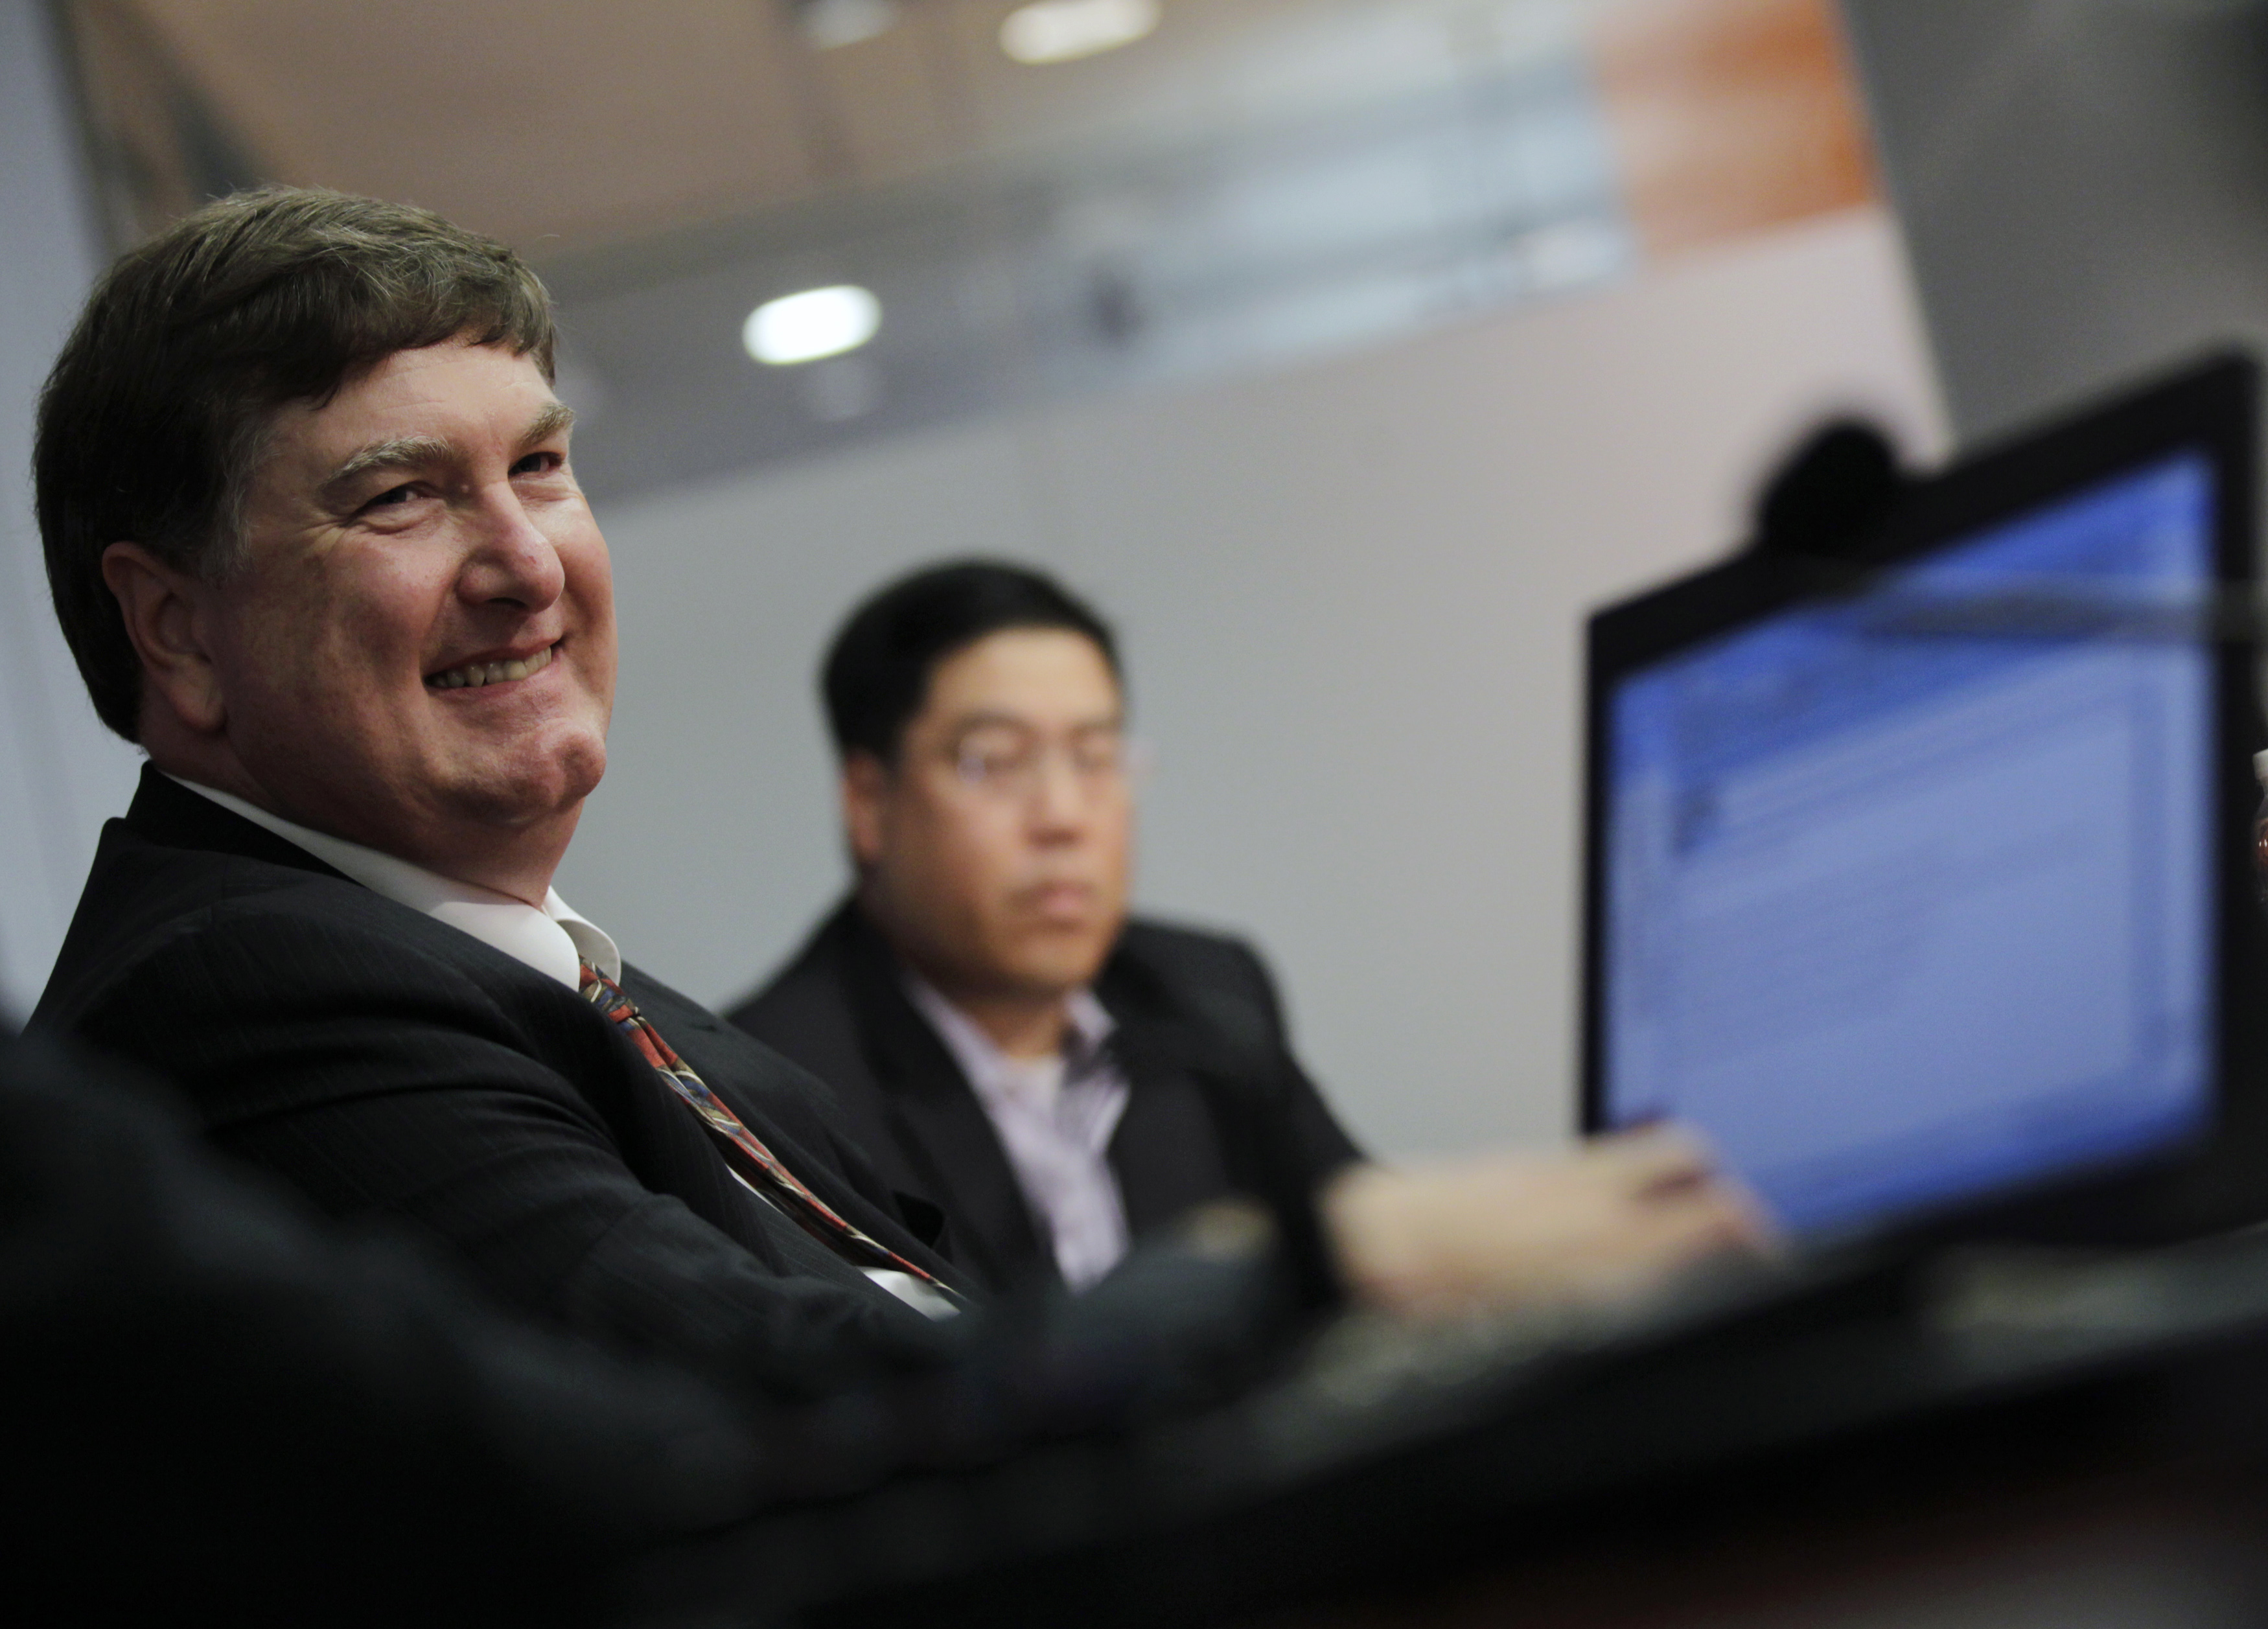 Johnson, senior VP of Corporate Strategy for Dell Inc, smiles during the Reuters Global Technology Summit in New York